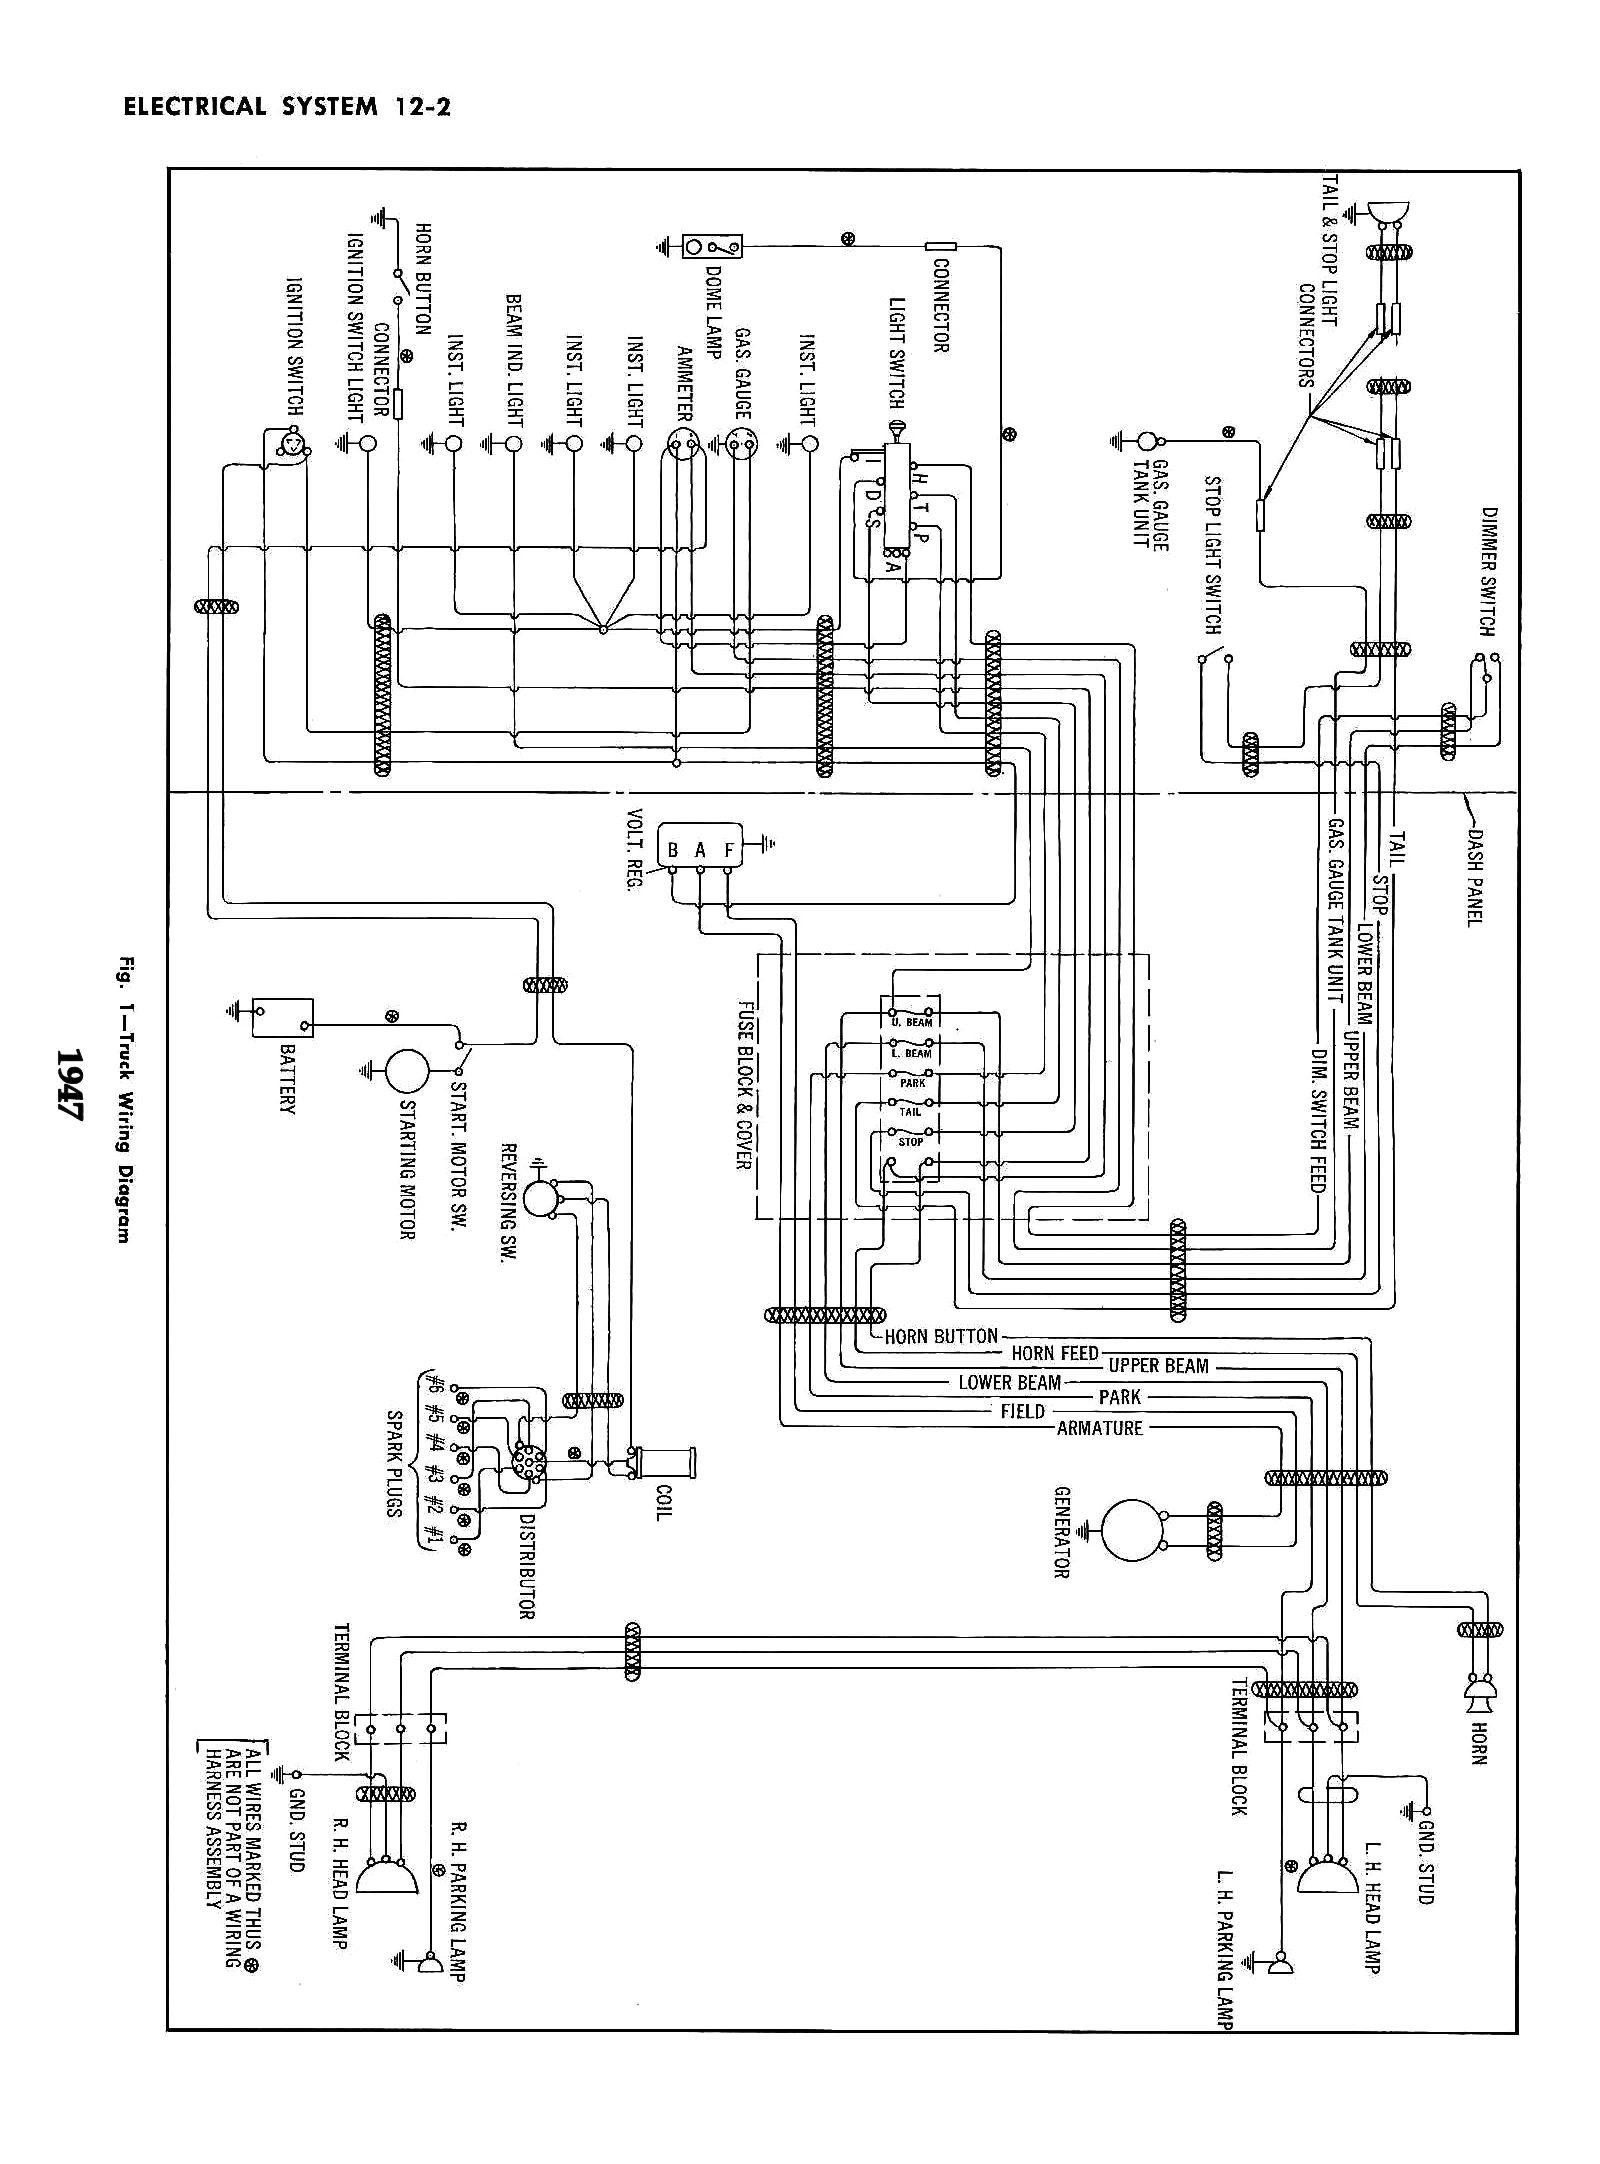 universal power window wiring diagram